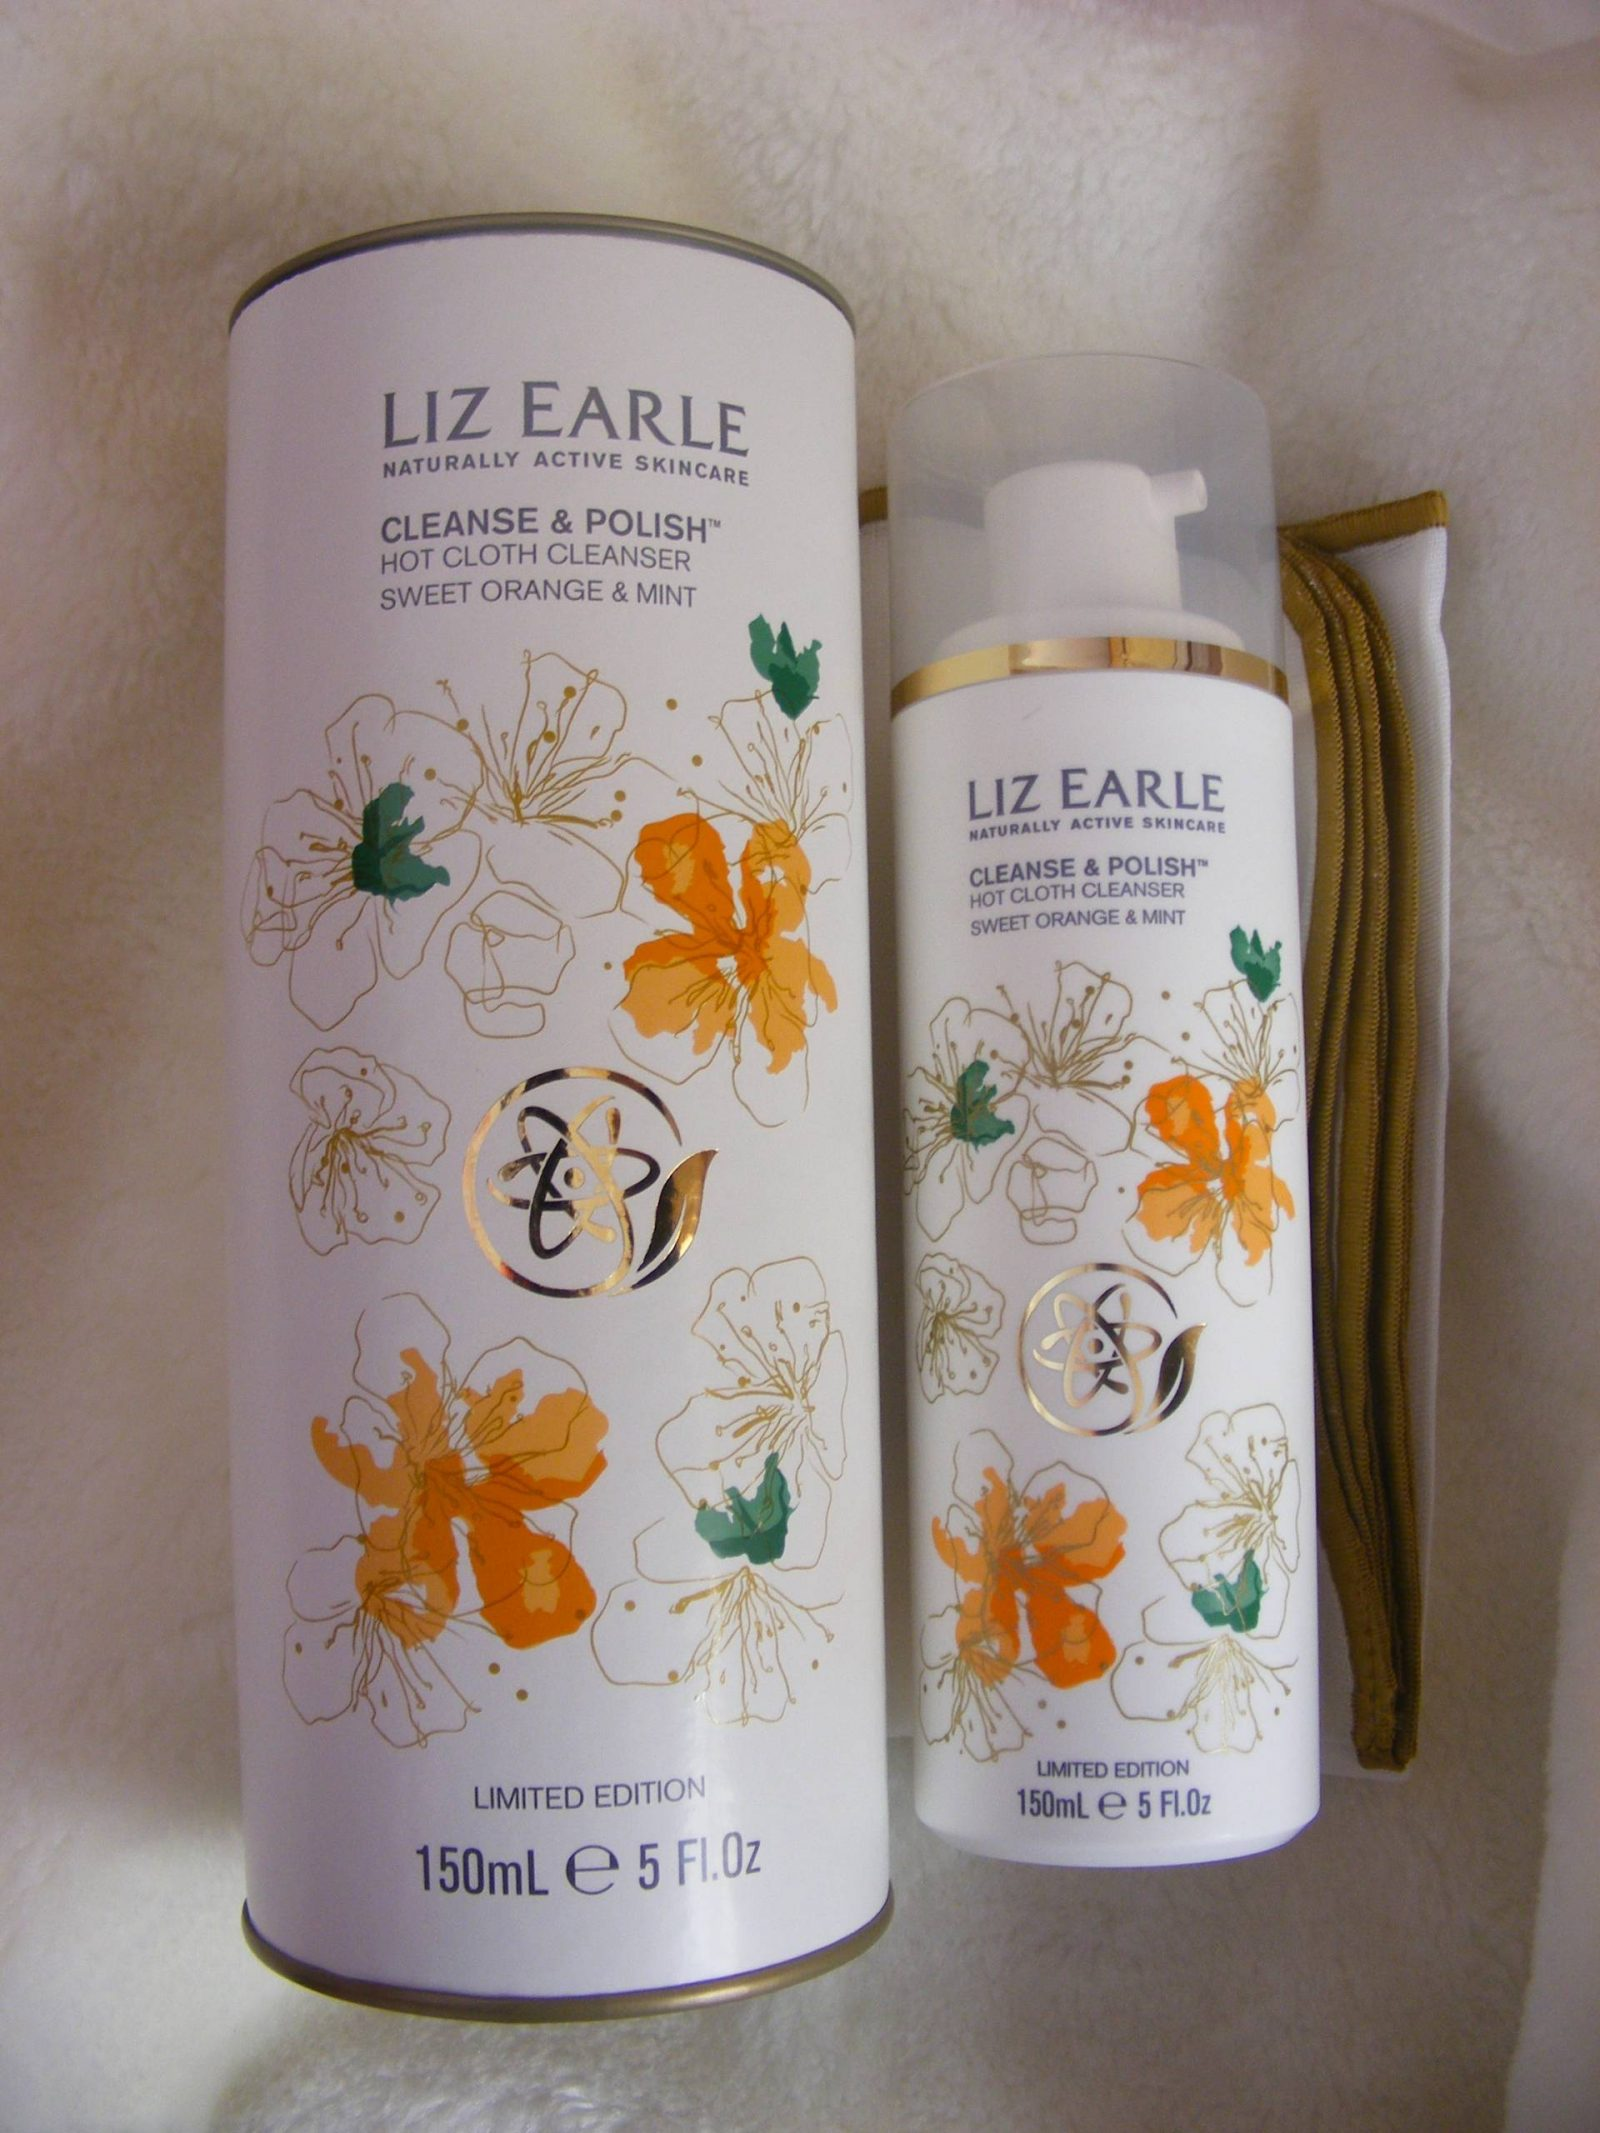 Liz Earle Cleanse and Polish special edition